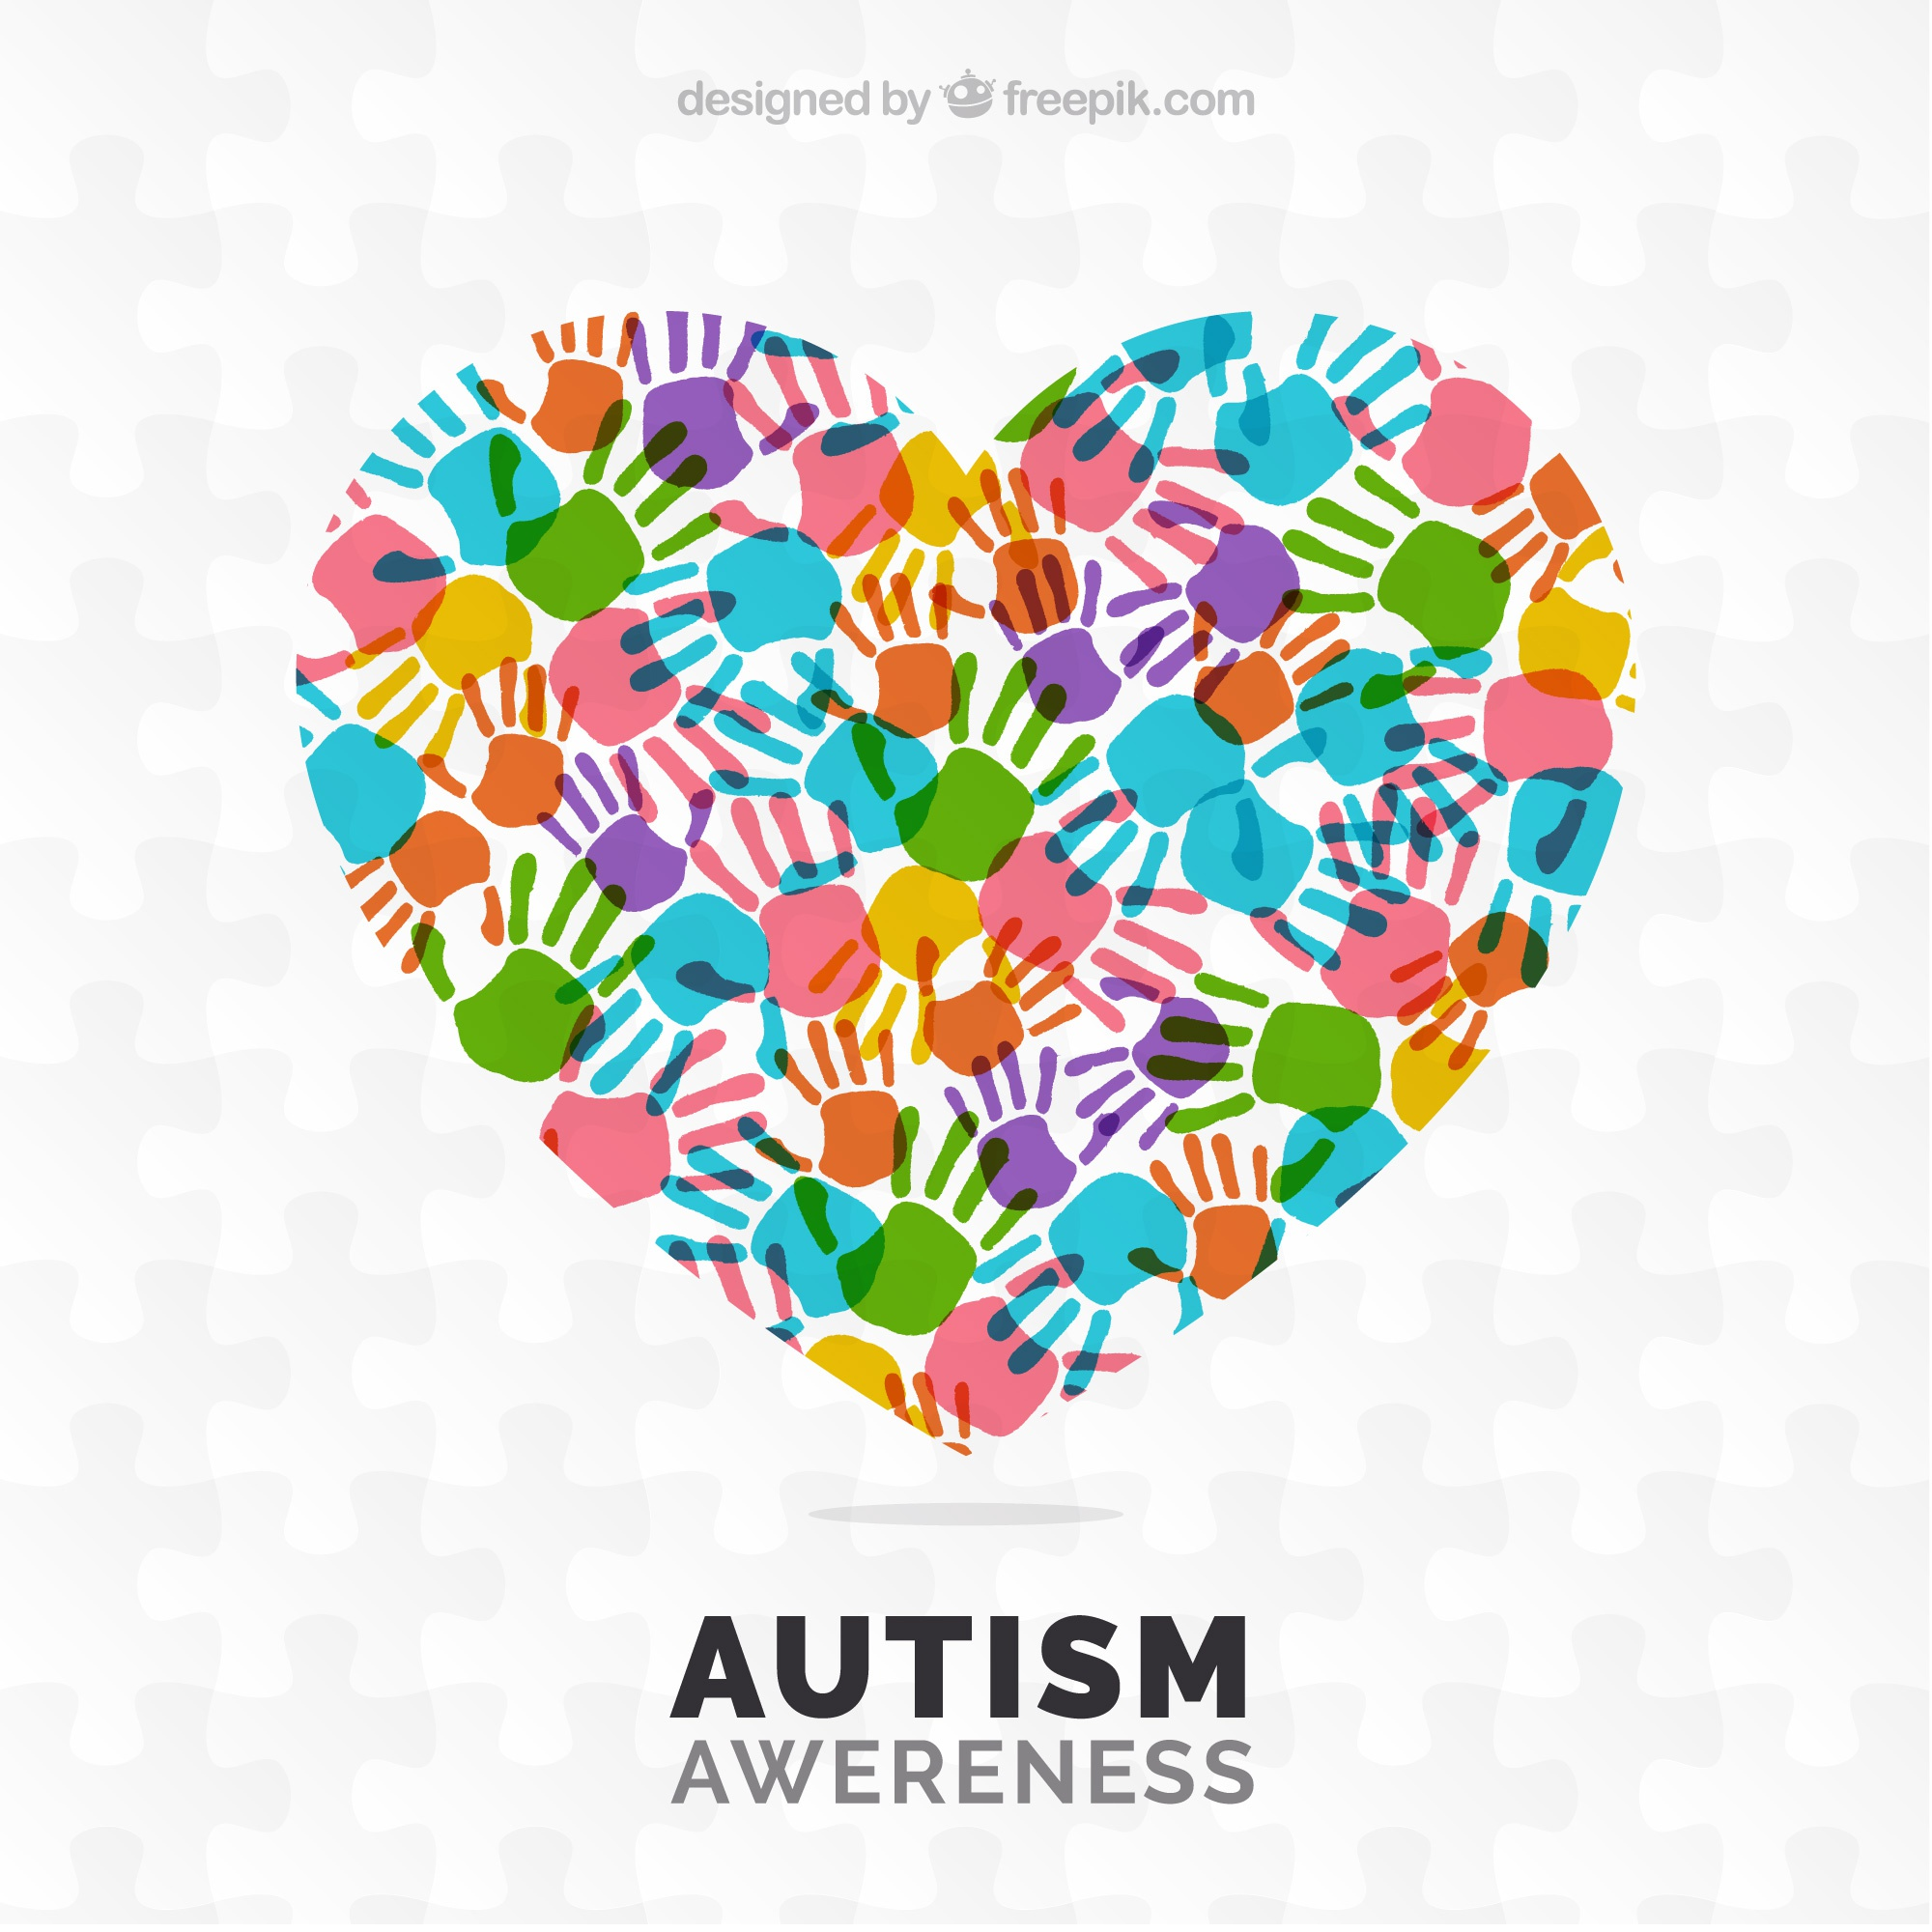 Autism day background with colorful handprints